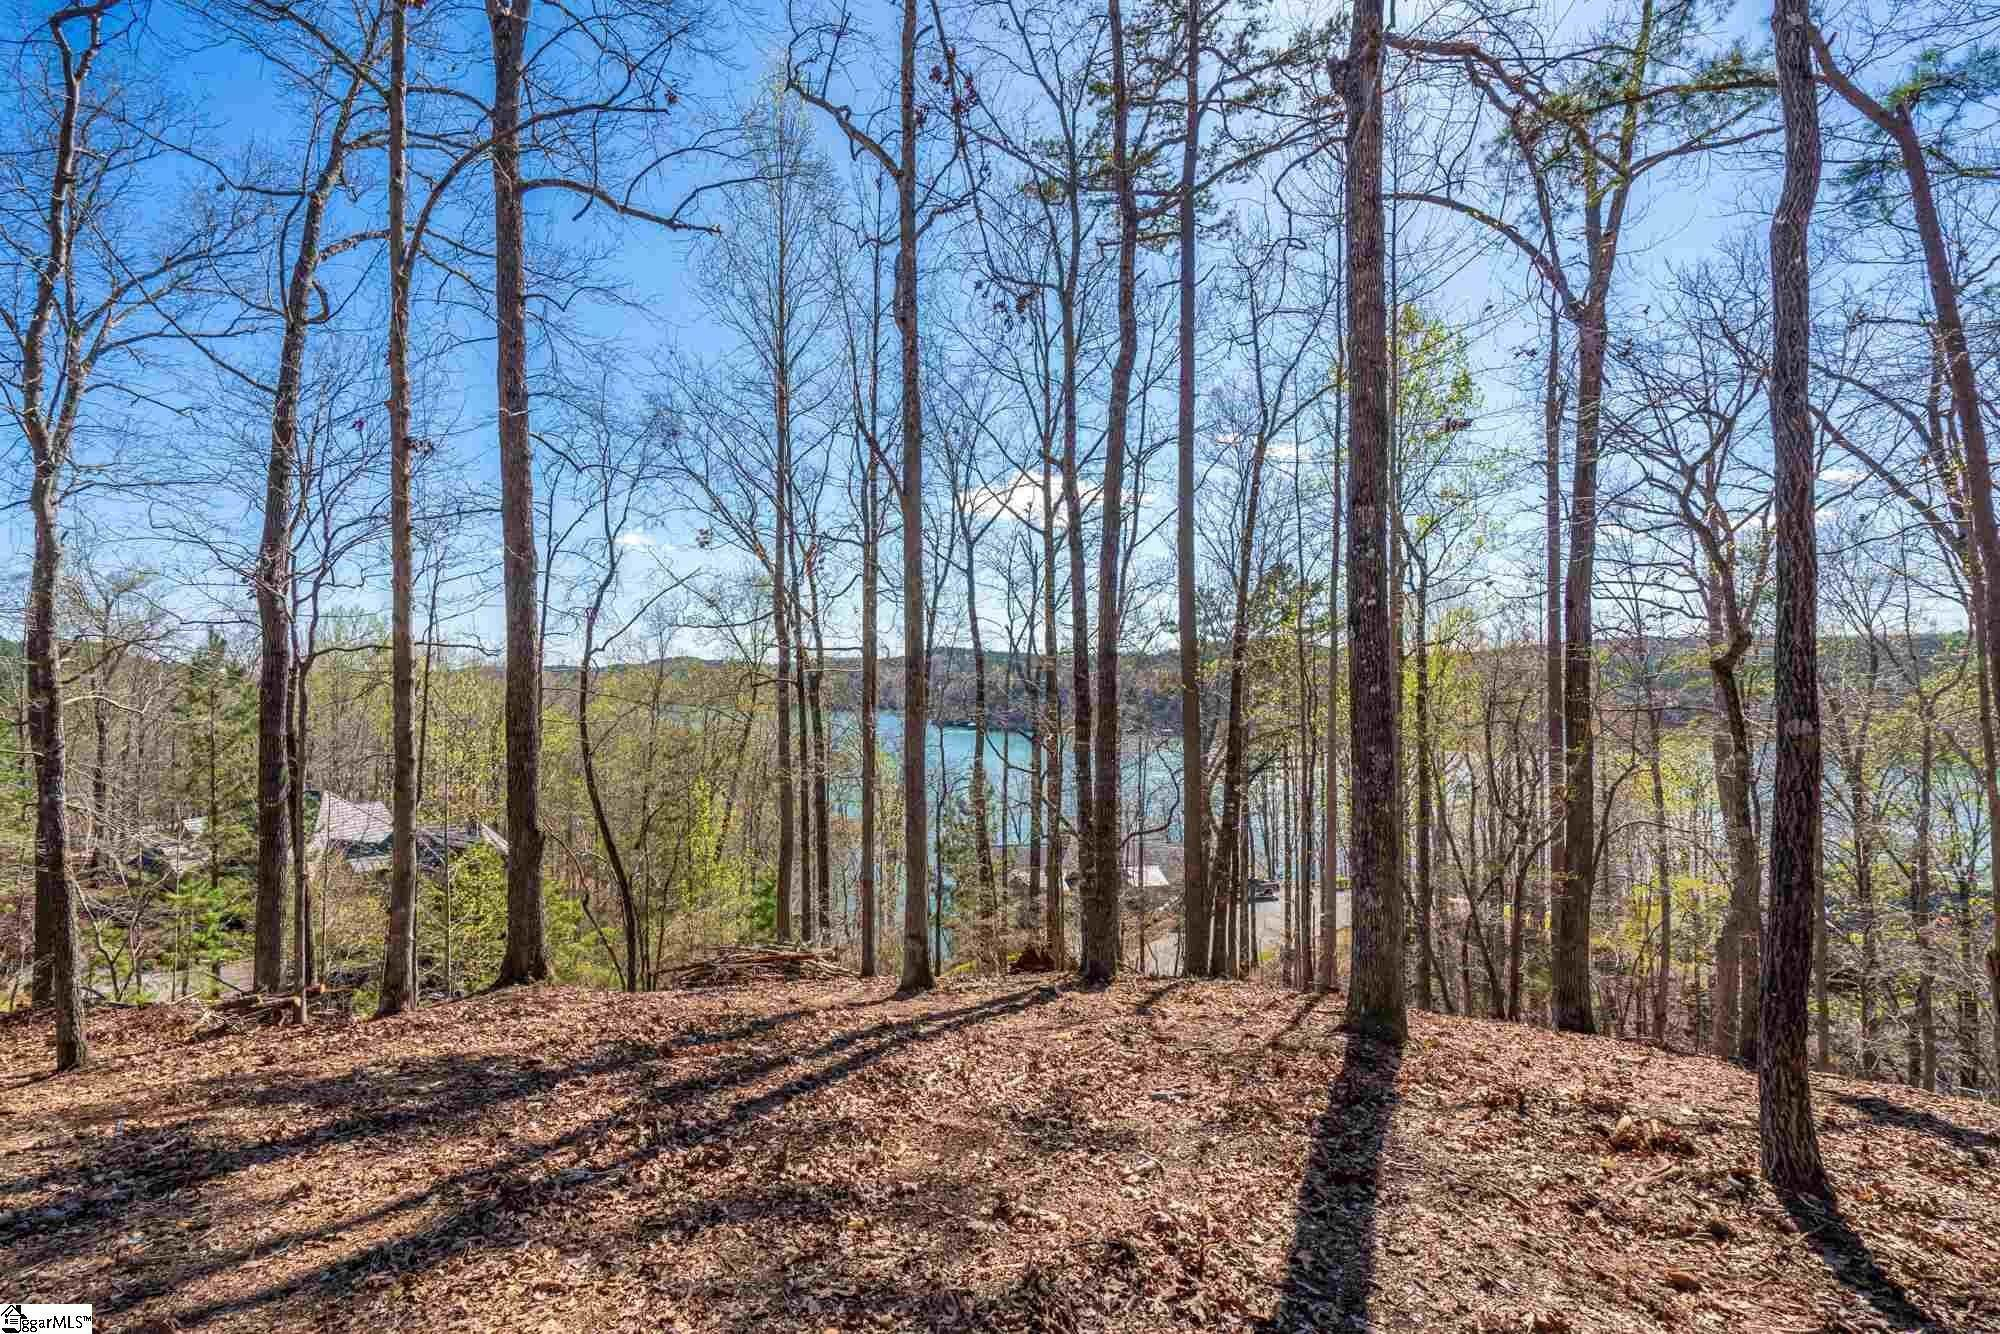 8. Residential Lot for Sale at The Reserve At Lake Keowee, Sunset, SC 29685